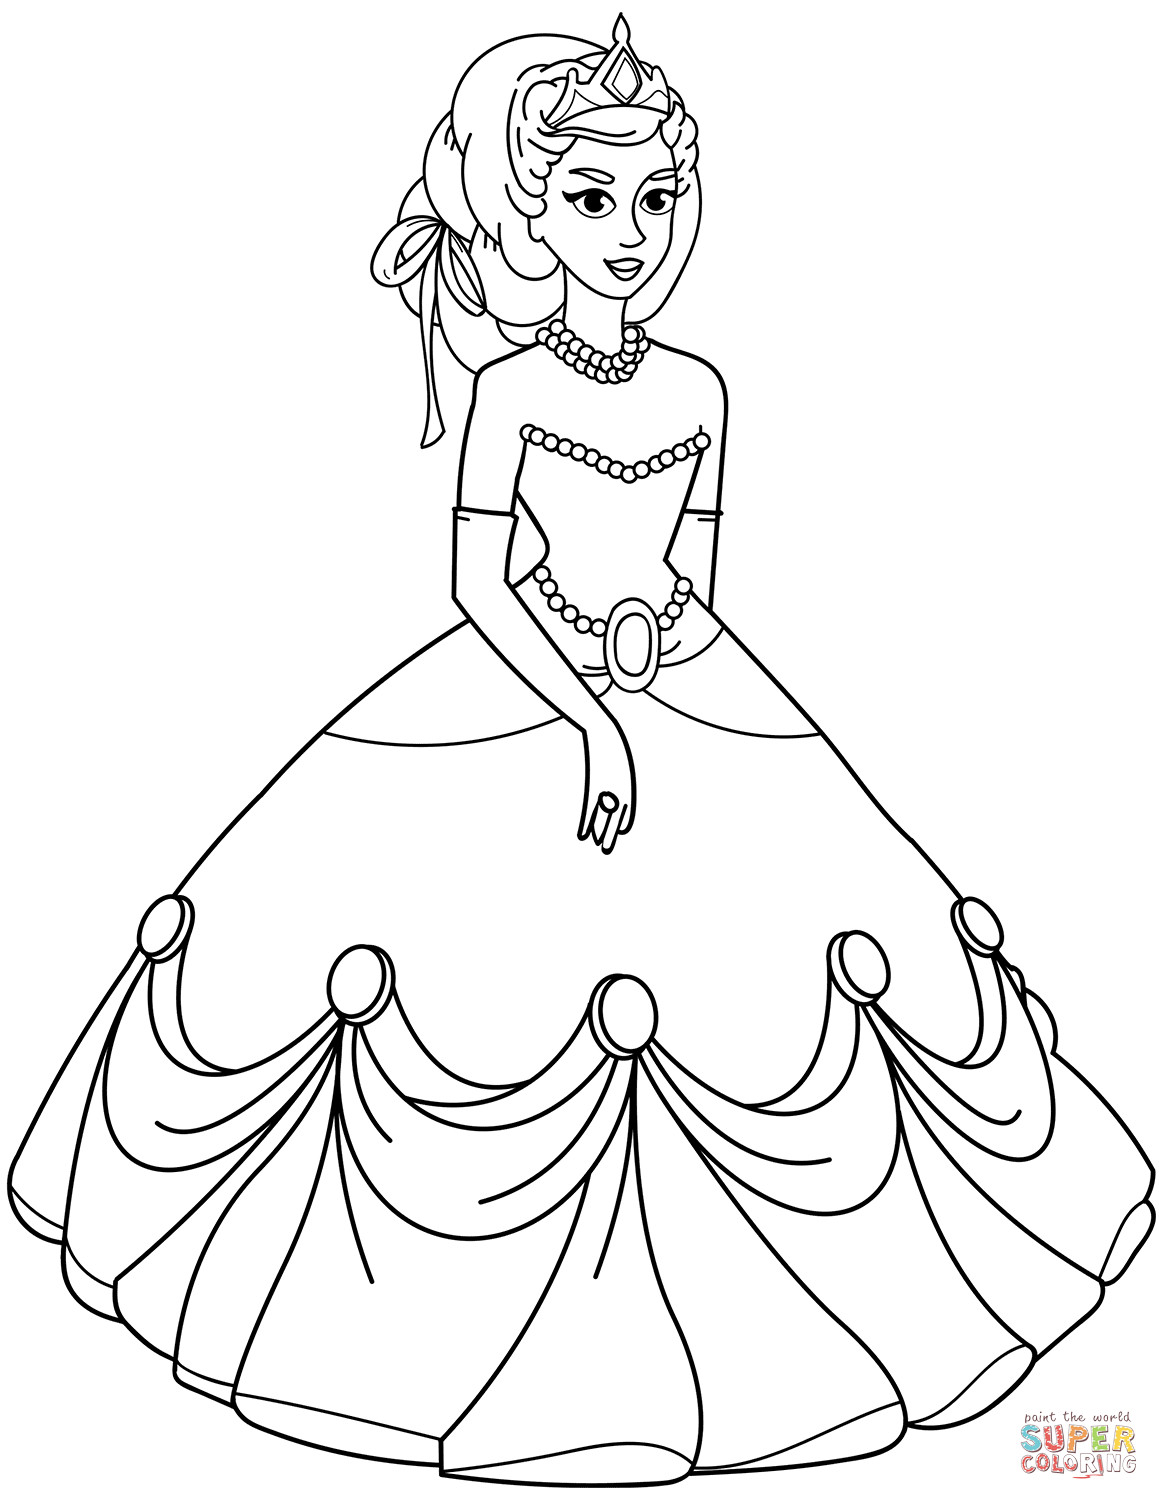 Best ideas about Free Princess Printable Coloring Pages . Save or Pin Princess in Ball Gown Dress coloring page Now.